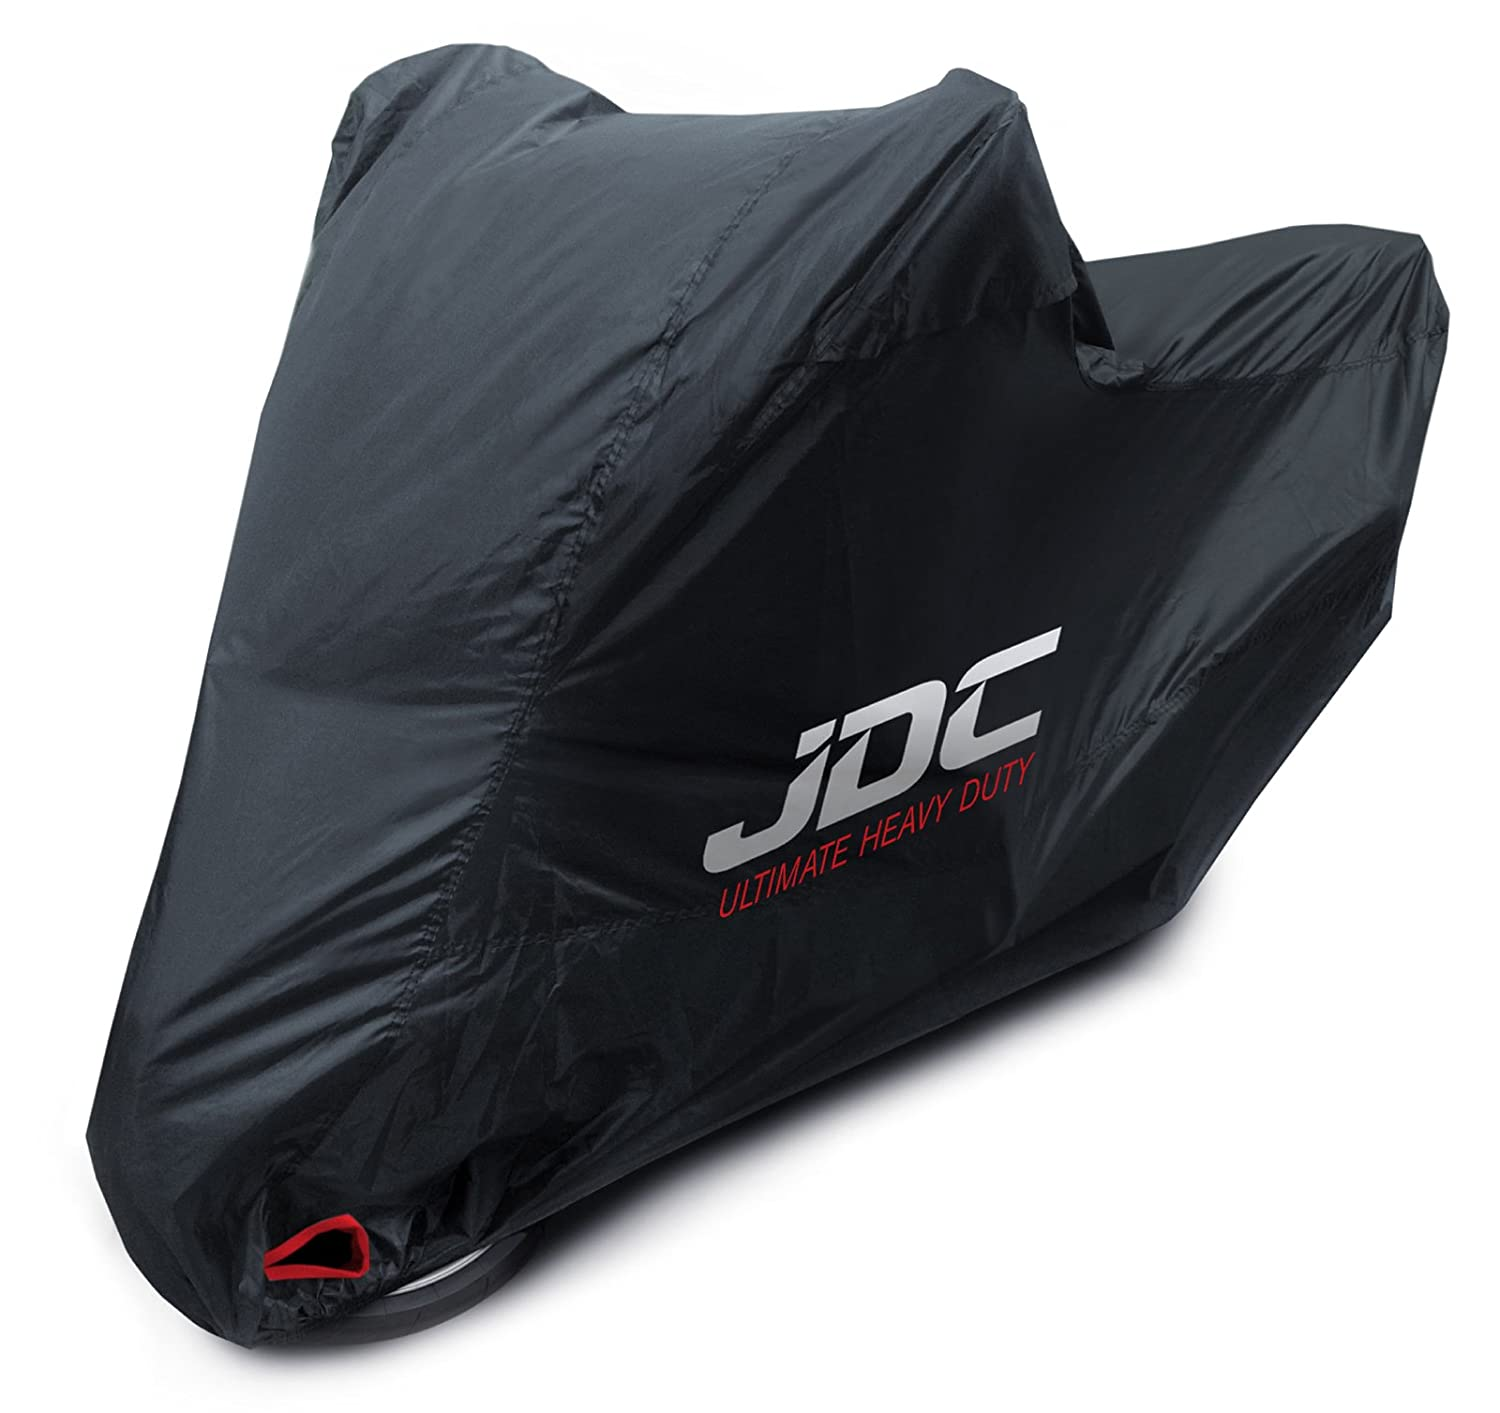 JDC Motorcycle 100% Waterproof Cover - ULTIMATE HEAVY DUTY (Extra Heavy Duty, Soft Lining, Heat Resistant Panels, Taped Seams) - M